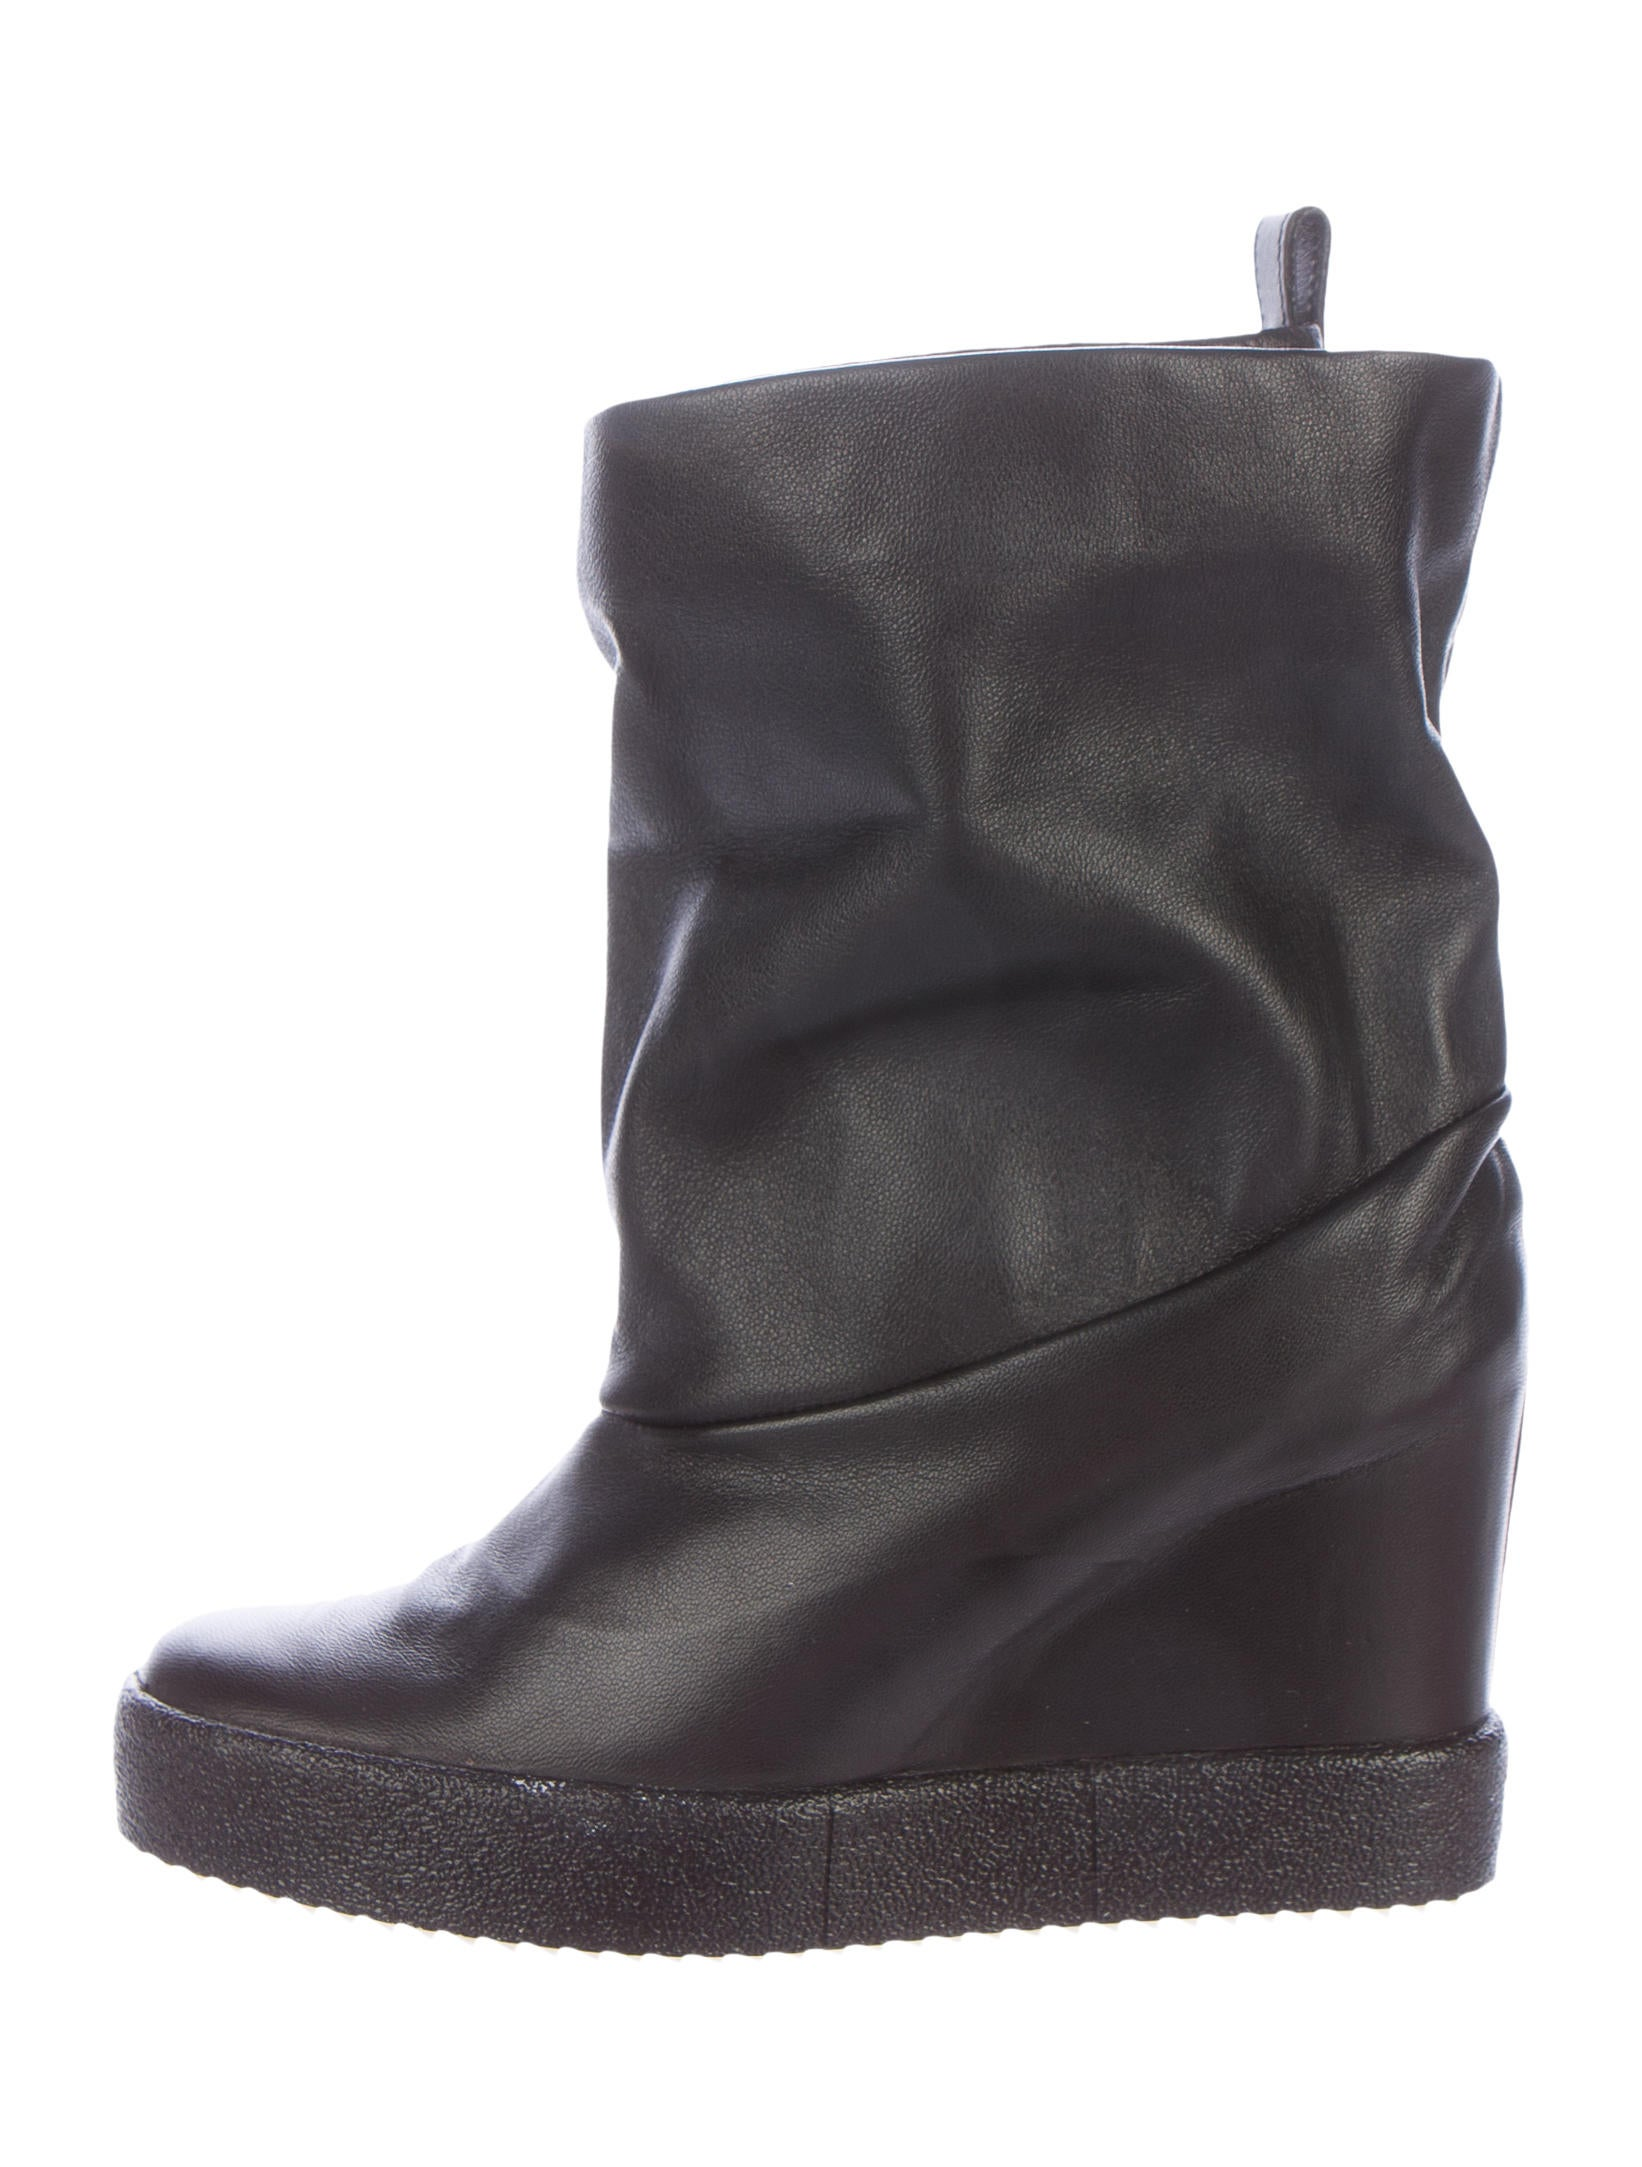 giuseppe zanotti leather wedge ankle boots shoes